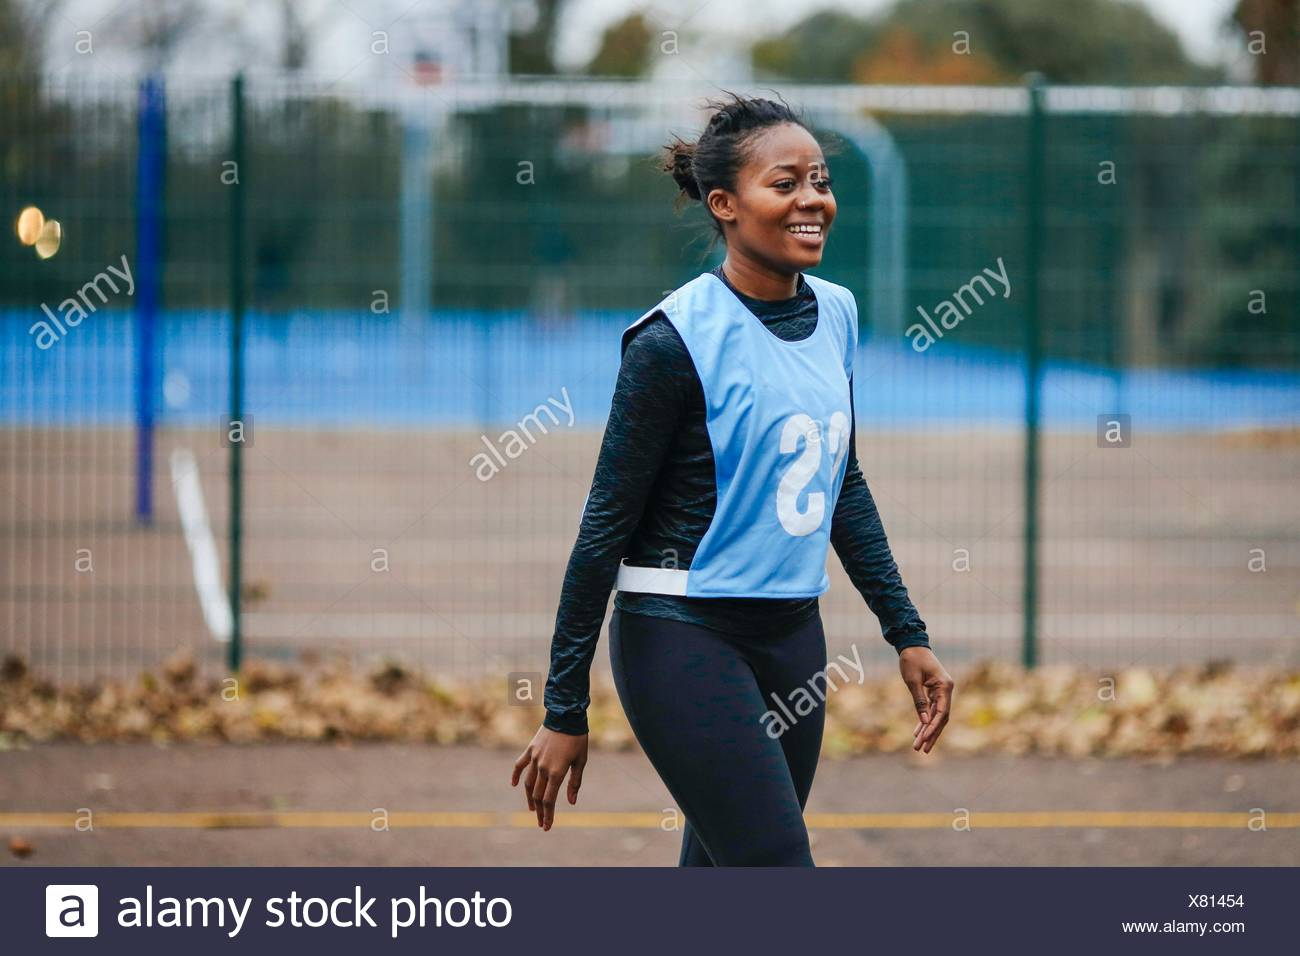 Young female netball player on netball court - Stock Image